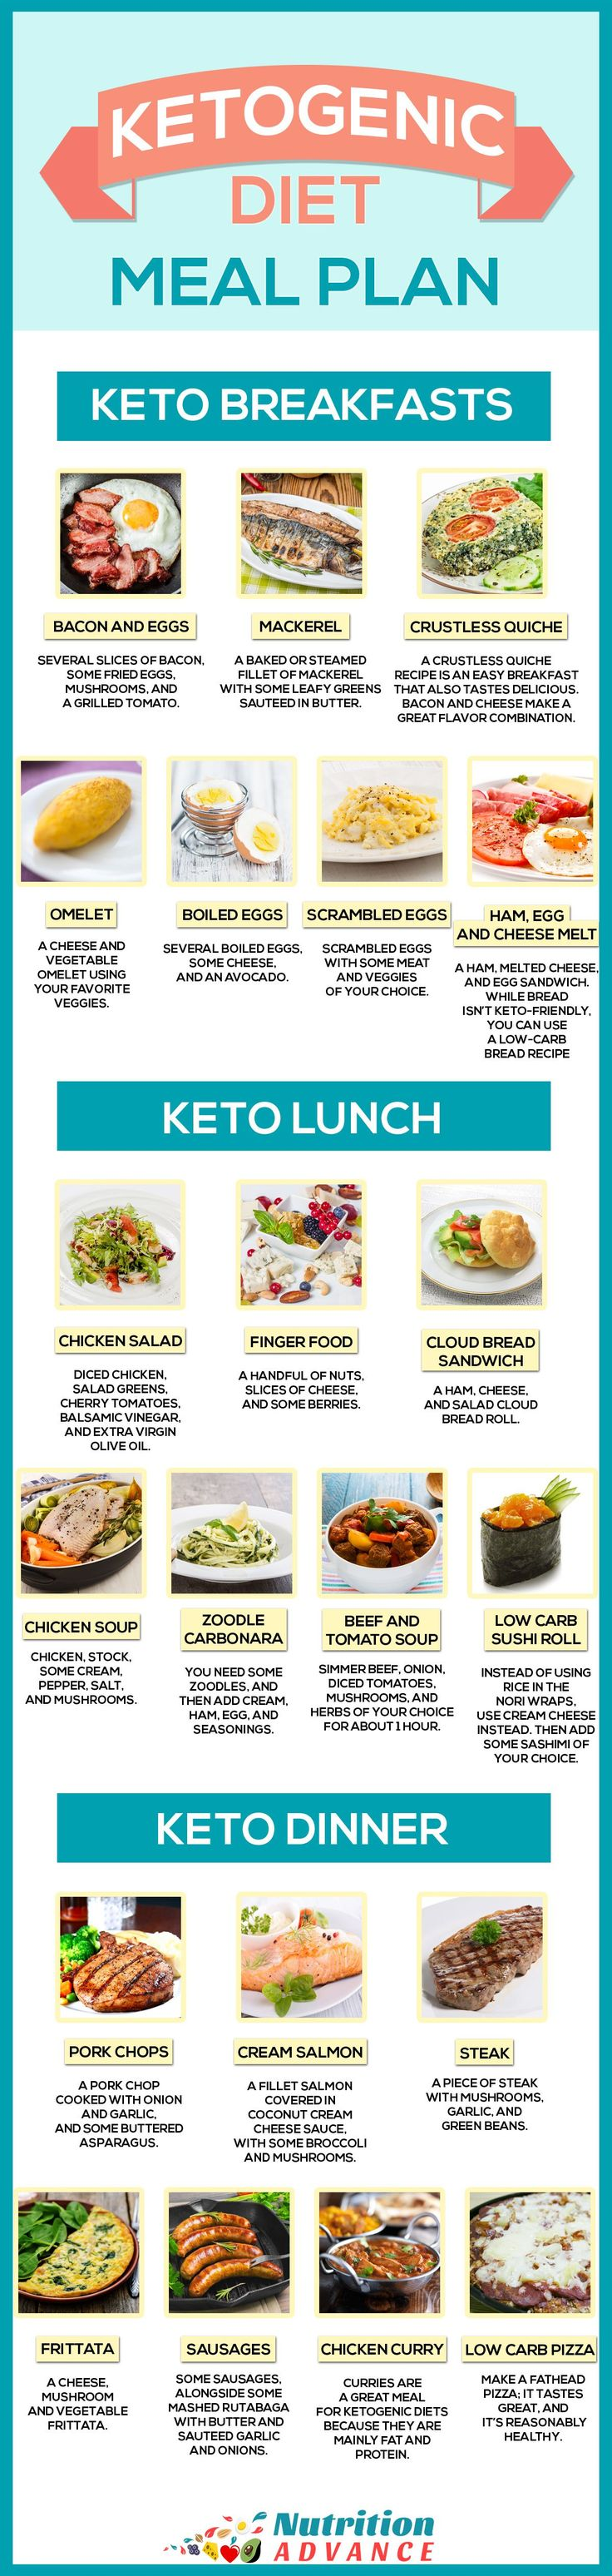 Ketogenic Diet Meal Plan For 7 Days - This infographic shows some ideas for a ke...